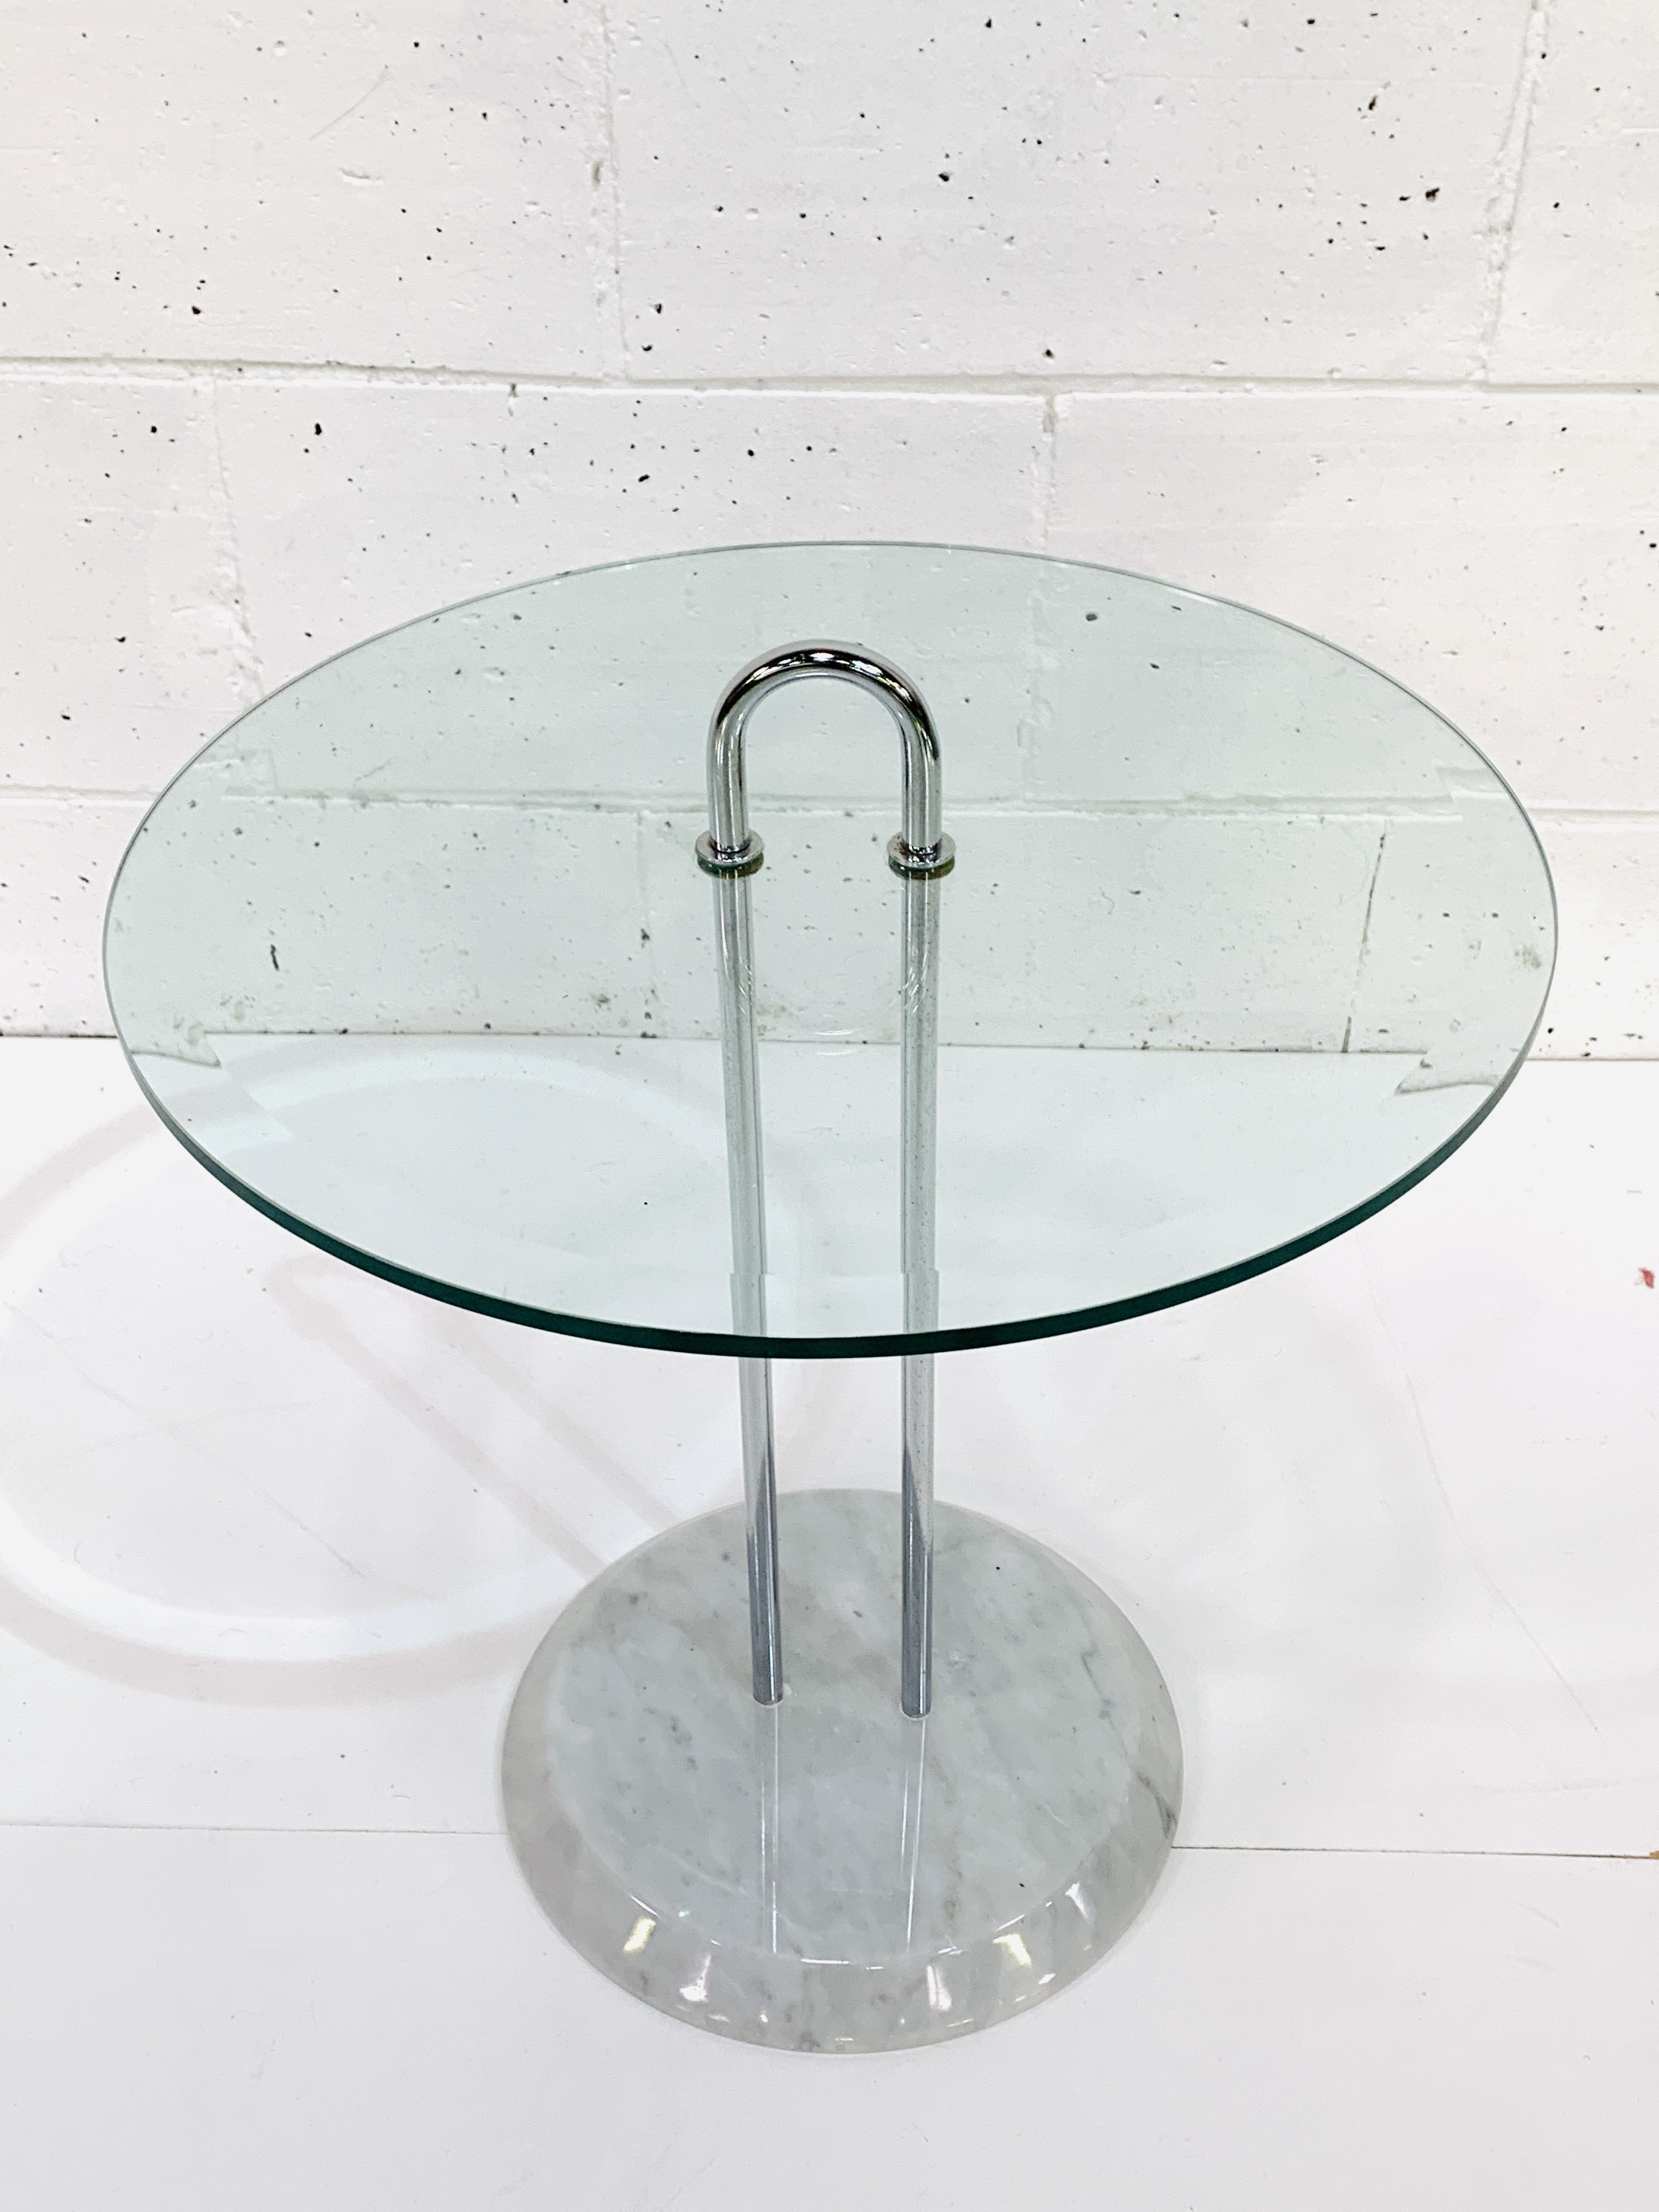 Circular bevelled edge glass top side table - Image 3 of 3